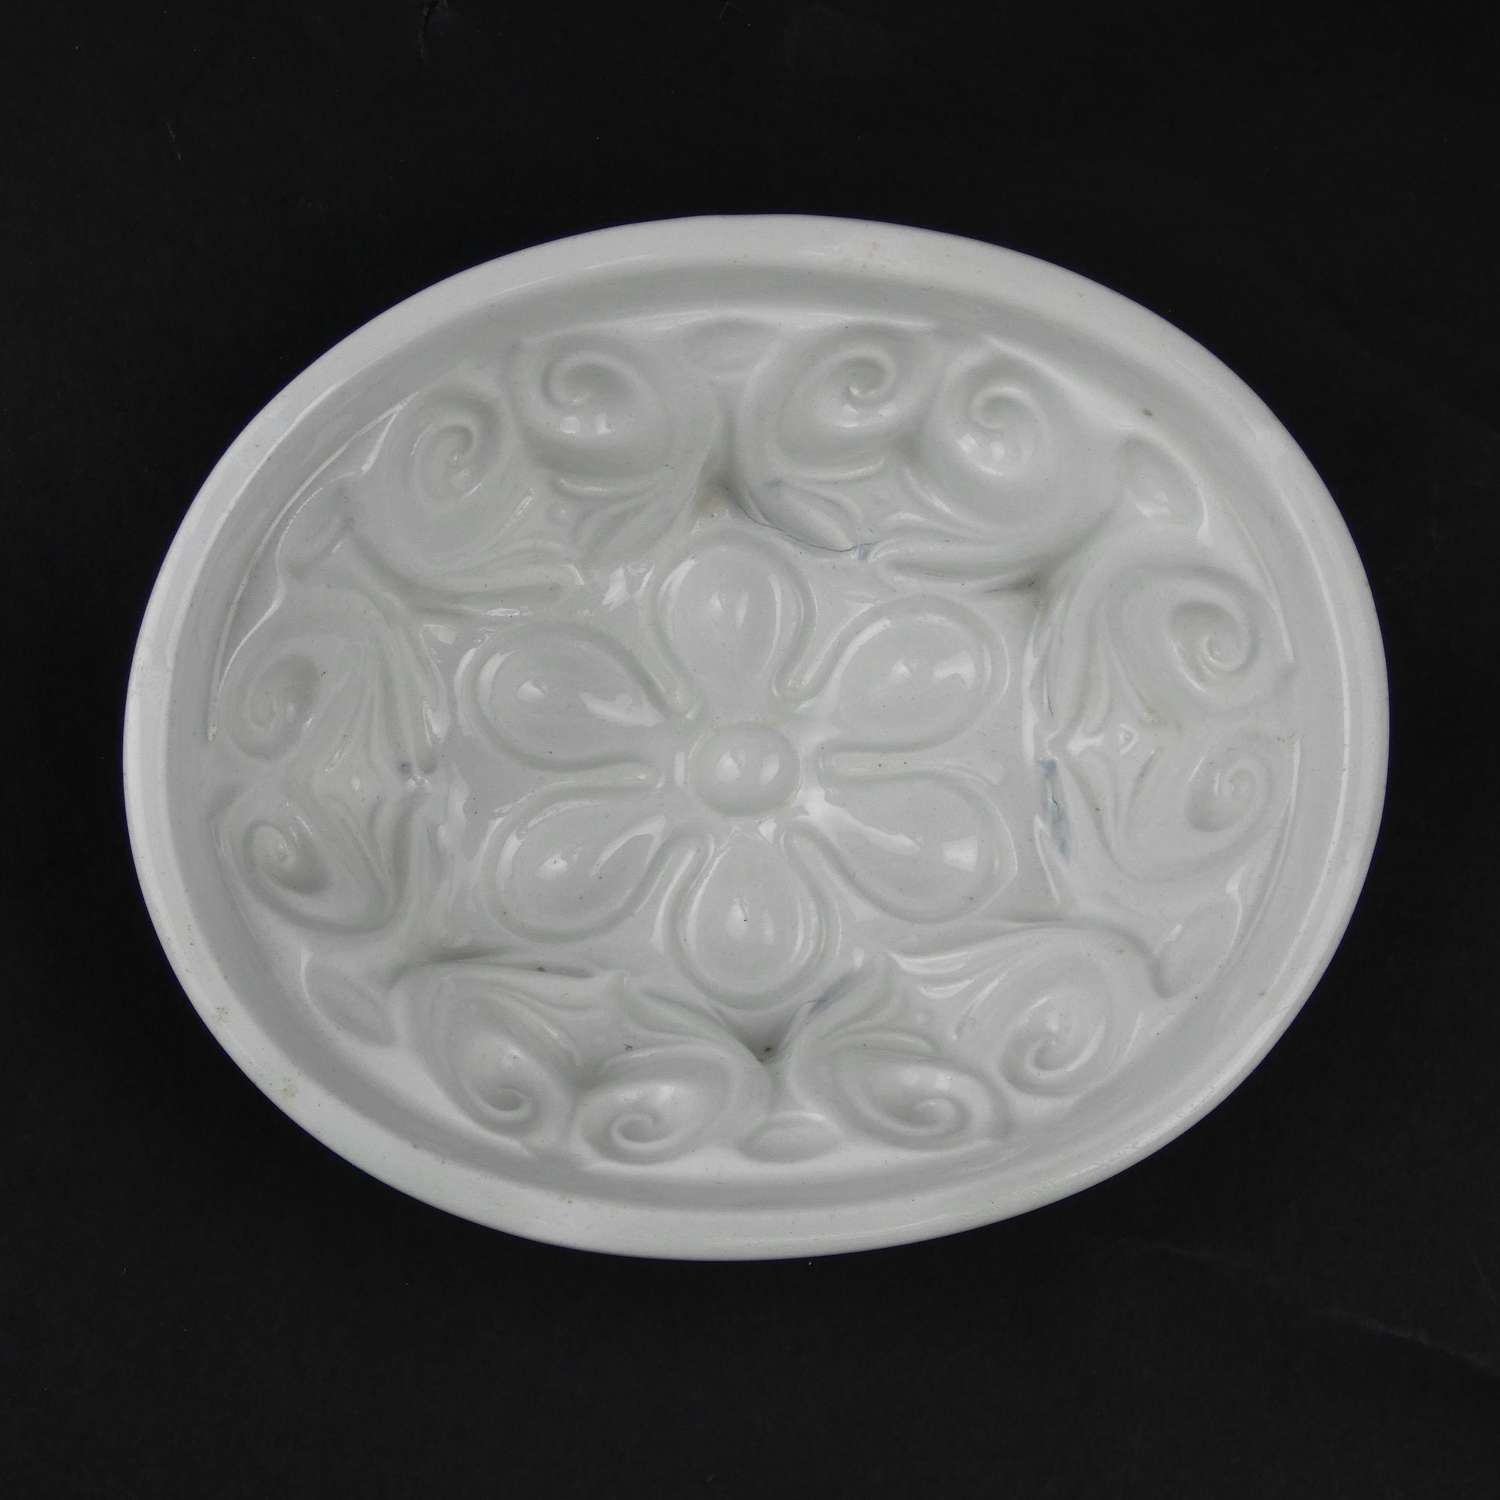 Booth's Ironstone Mould